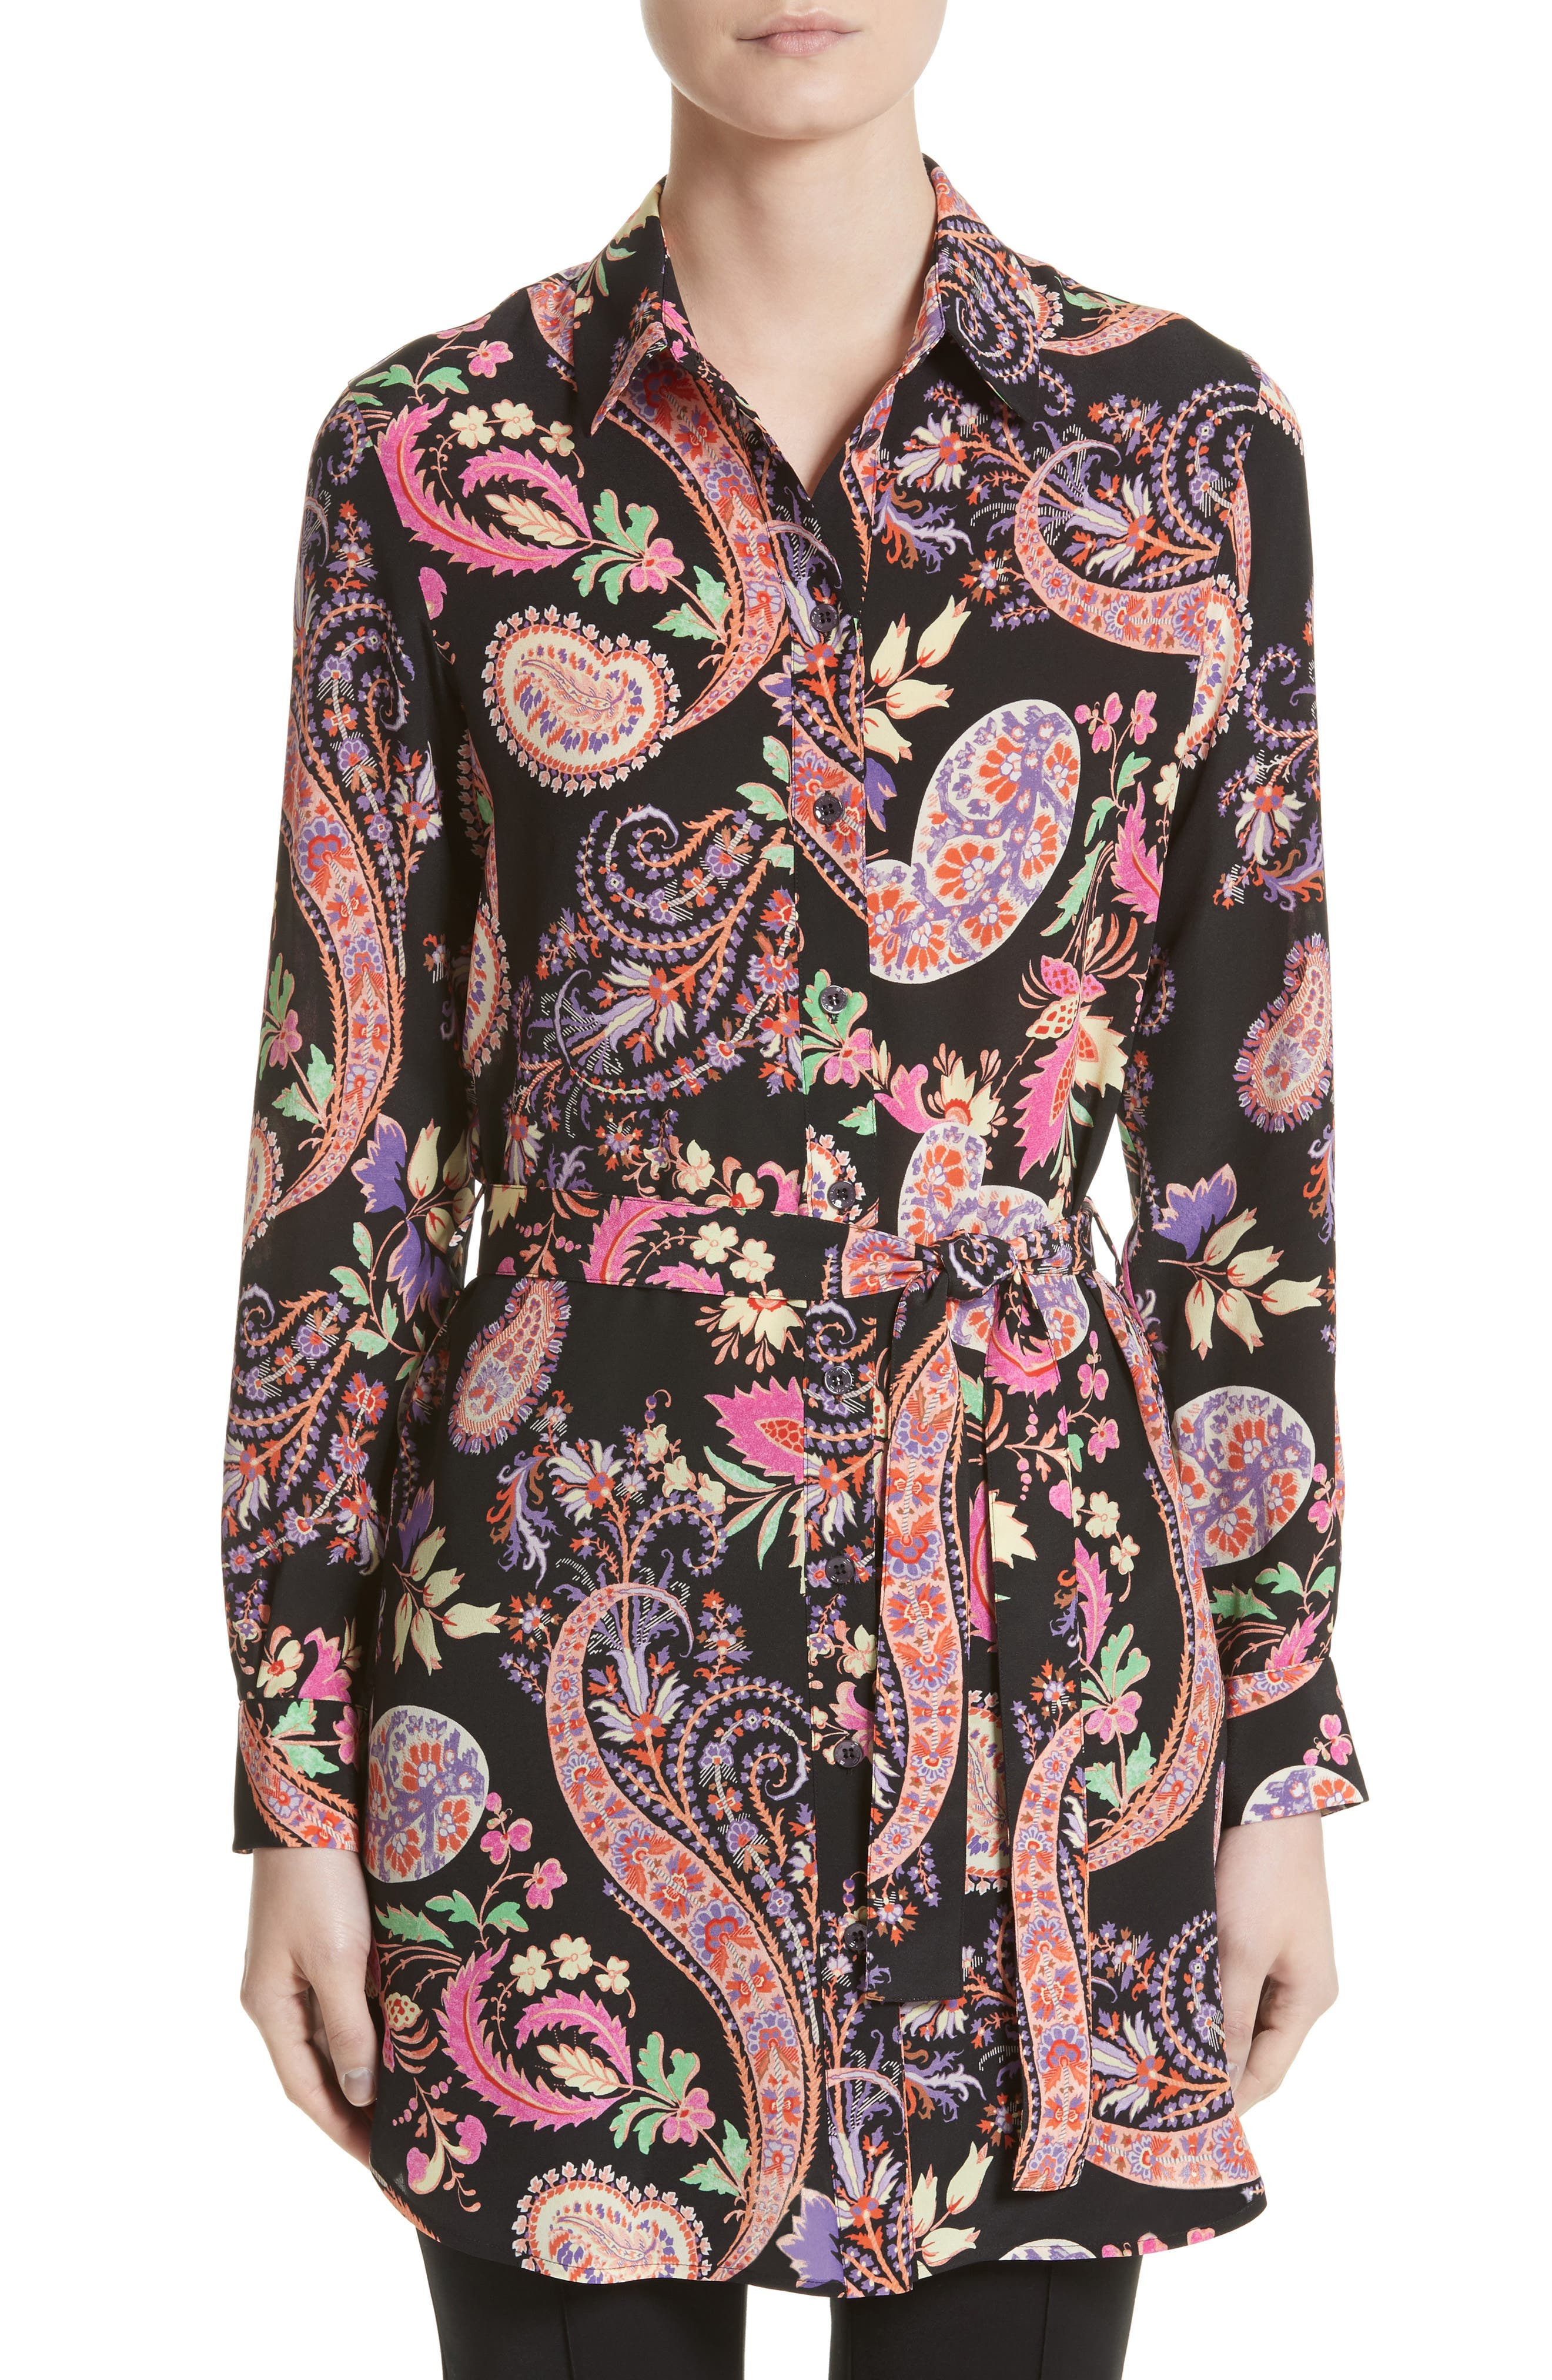 Alternate Image 1 Selected - Etro Floral Paisley Print Silk Tunic